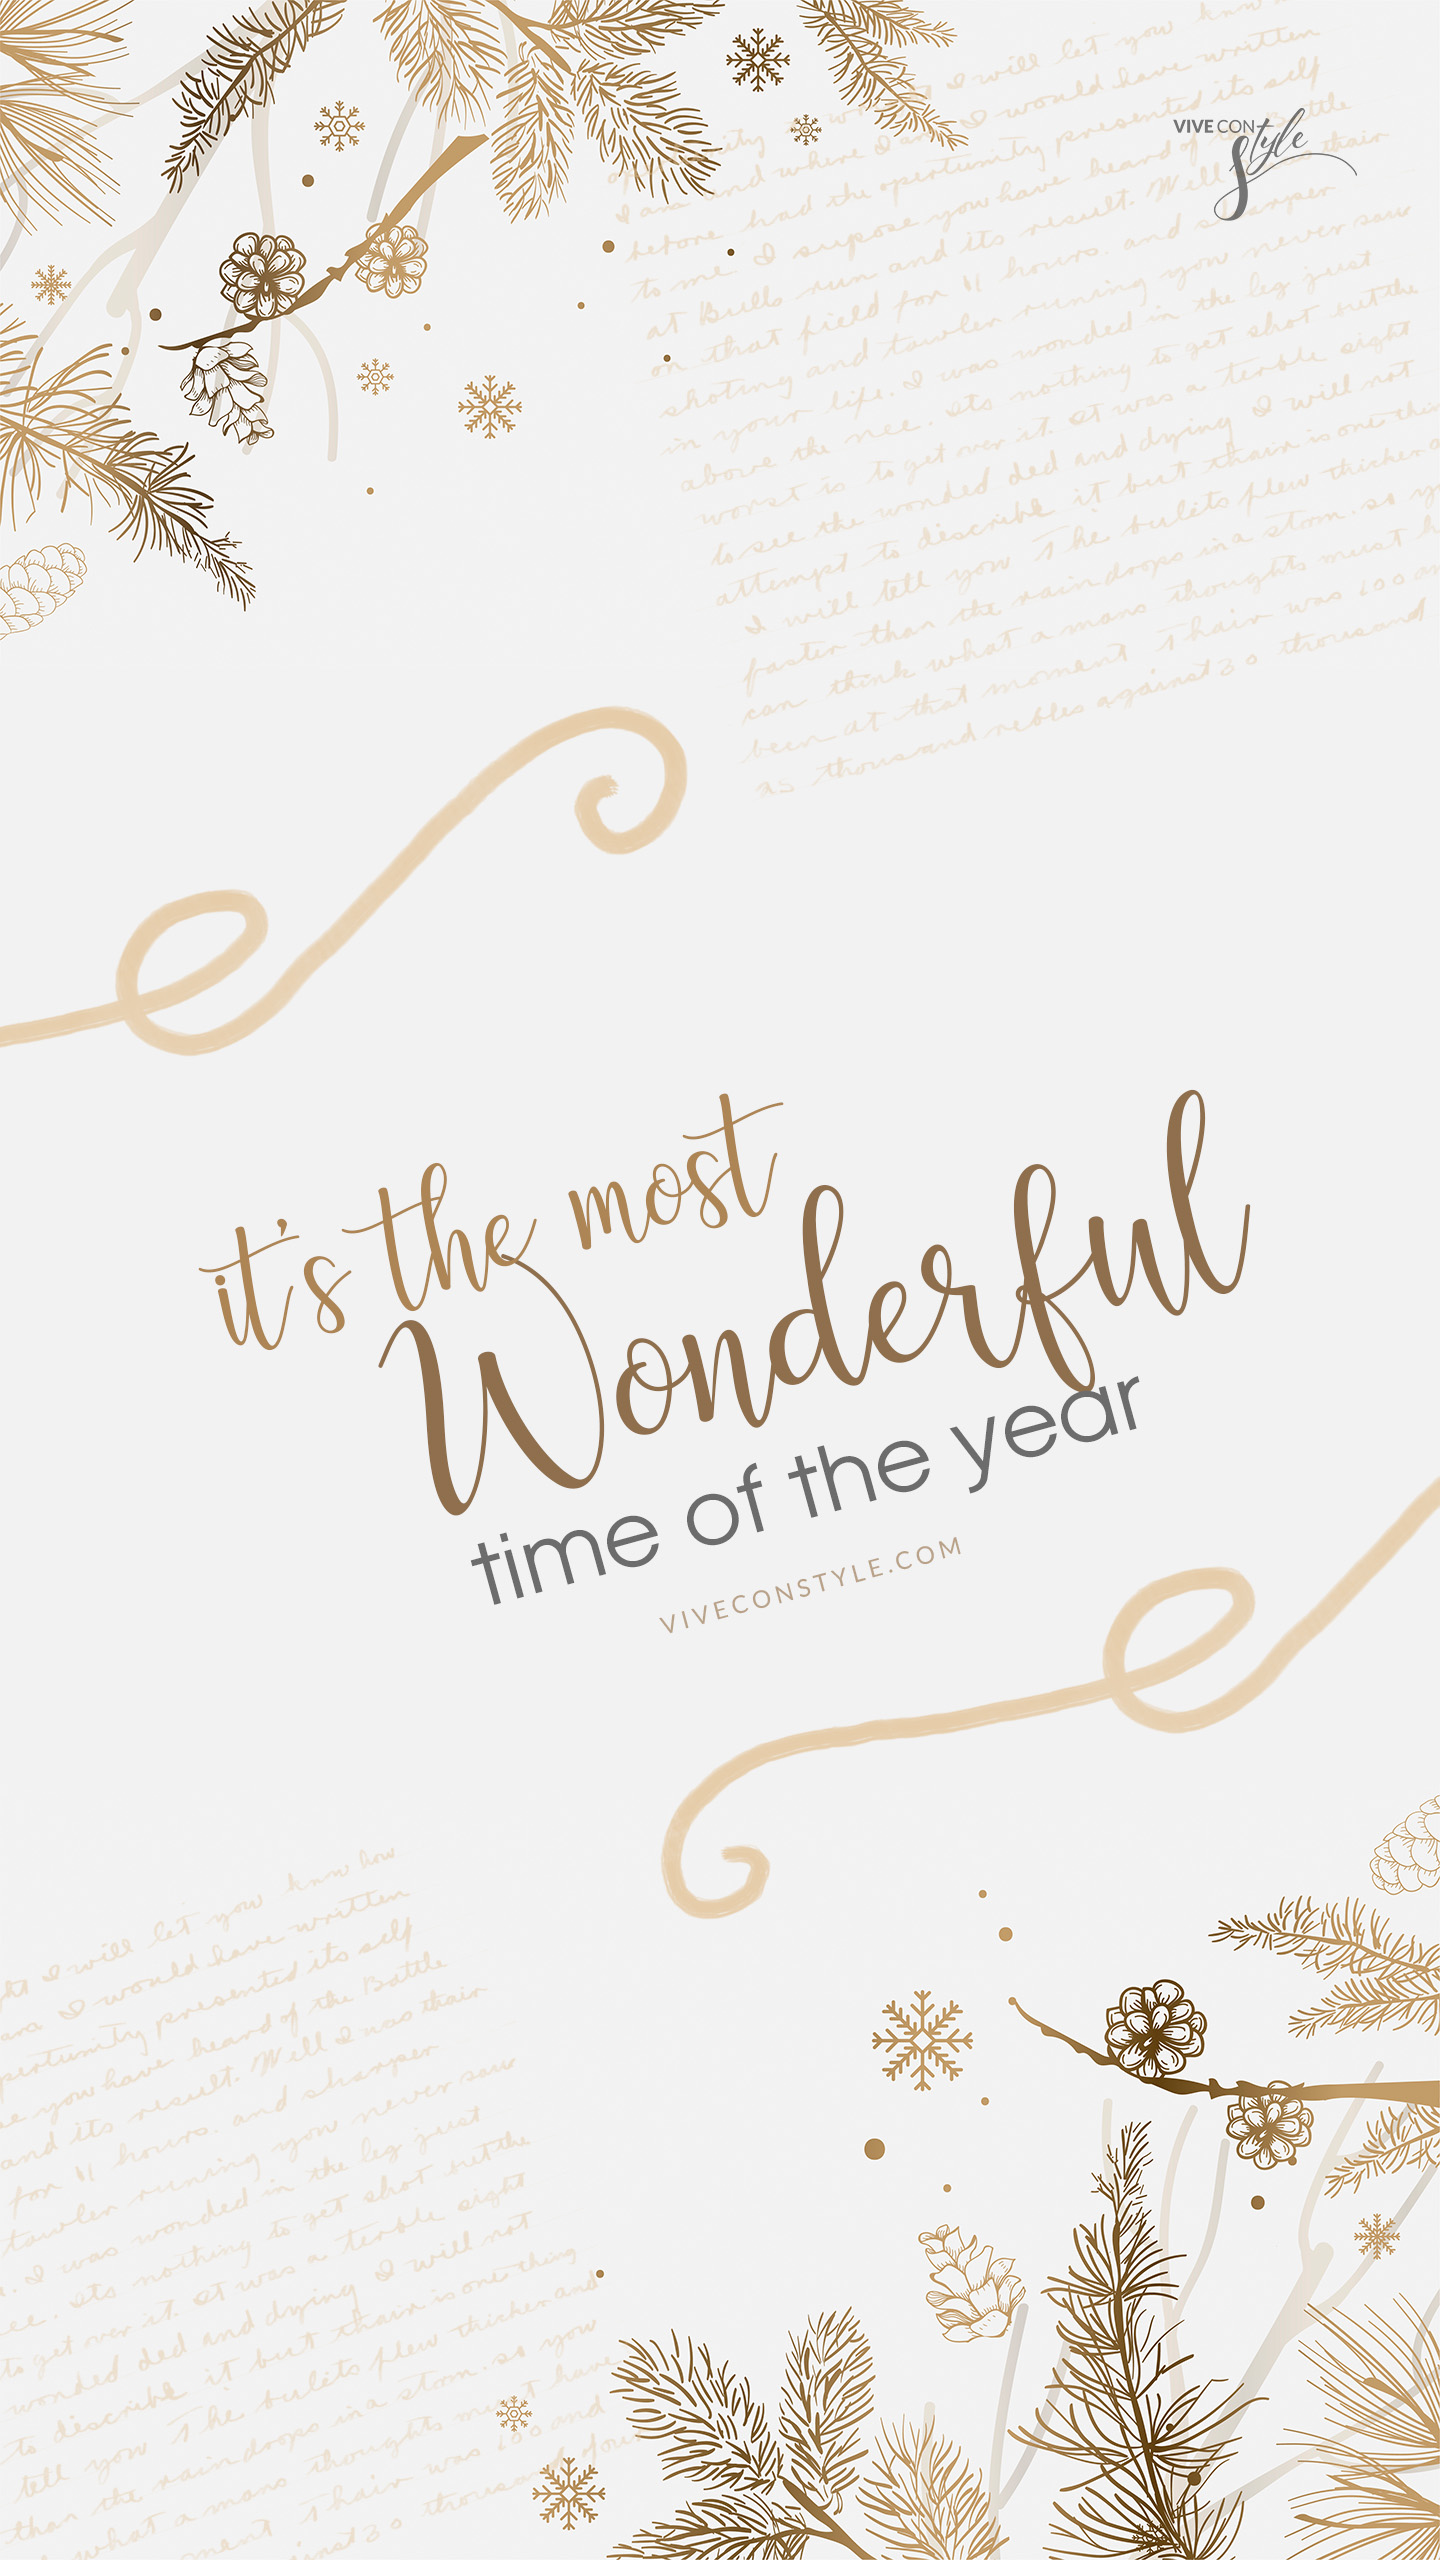 It's the most wonderful time Christmas wallpaper